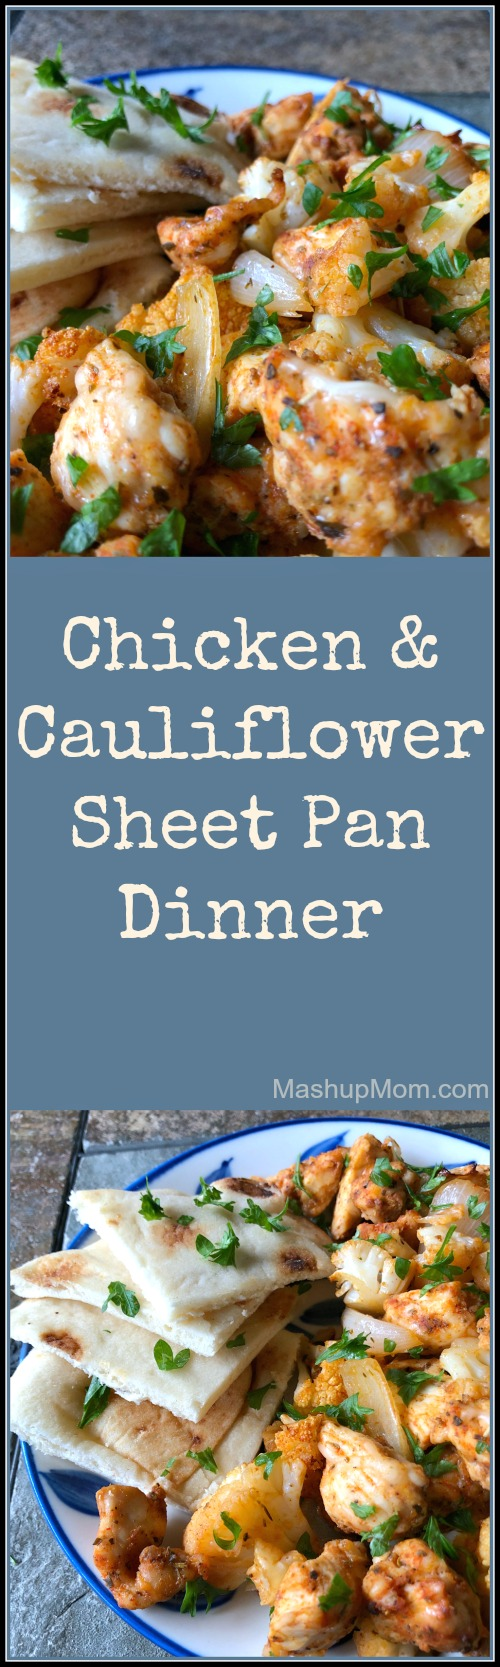 chicken & cauliflower sheet pan dinner